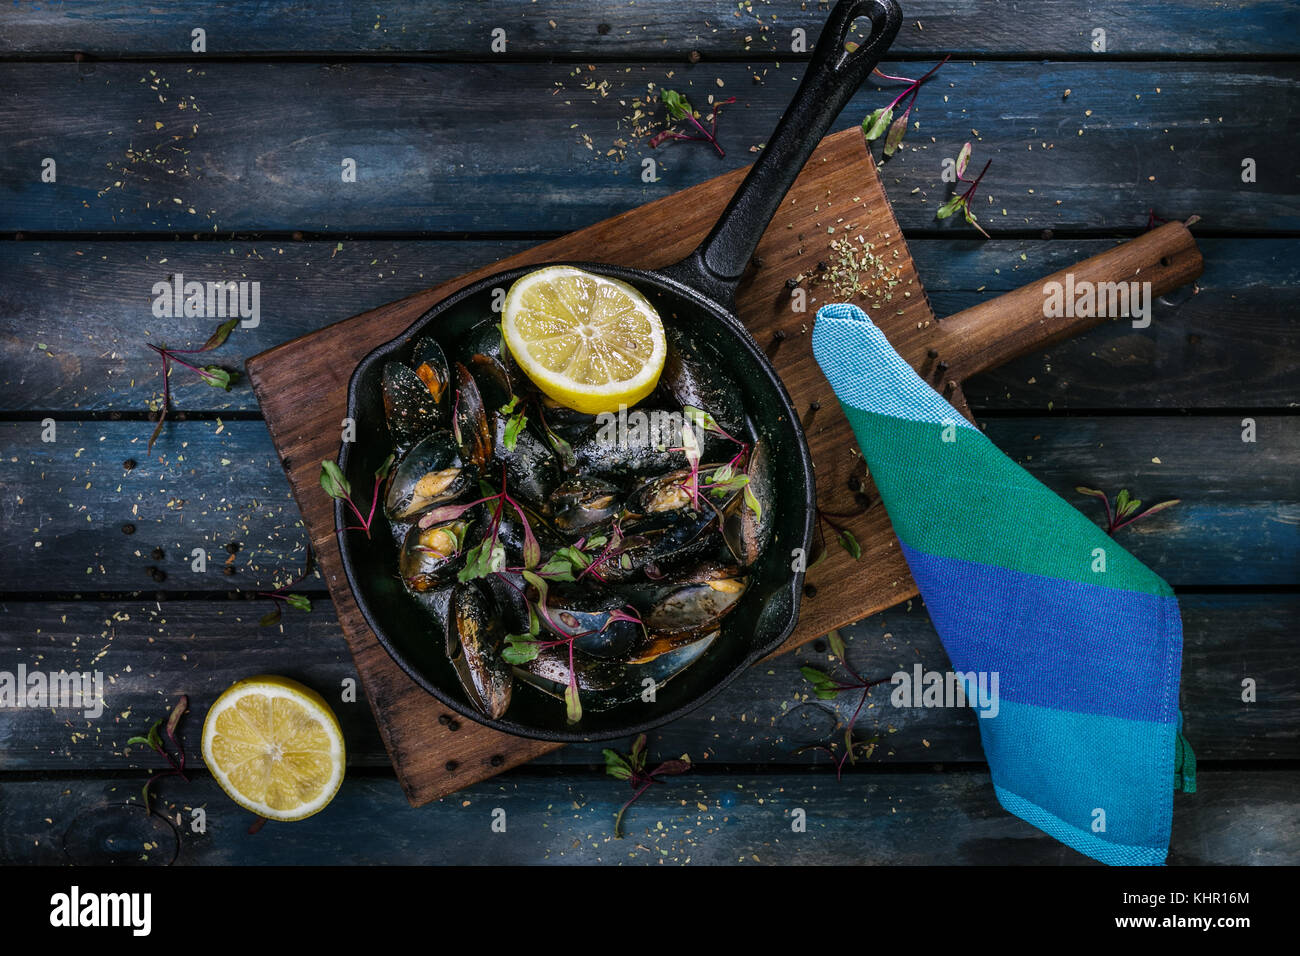 Delicious mussels. Serving on a hot frying pan with herbs spices and lemon on a colored wooden background. Top view. - Stock Image